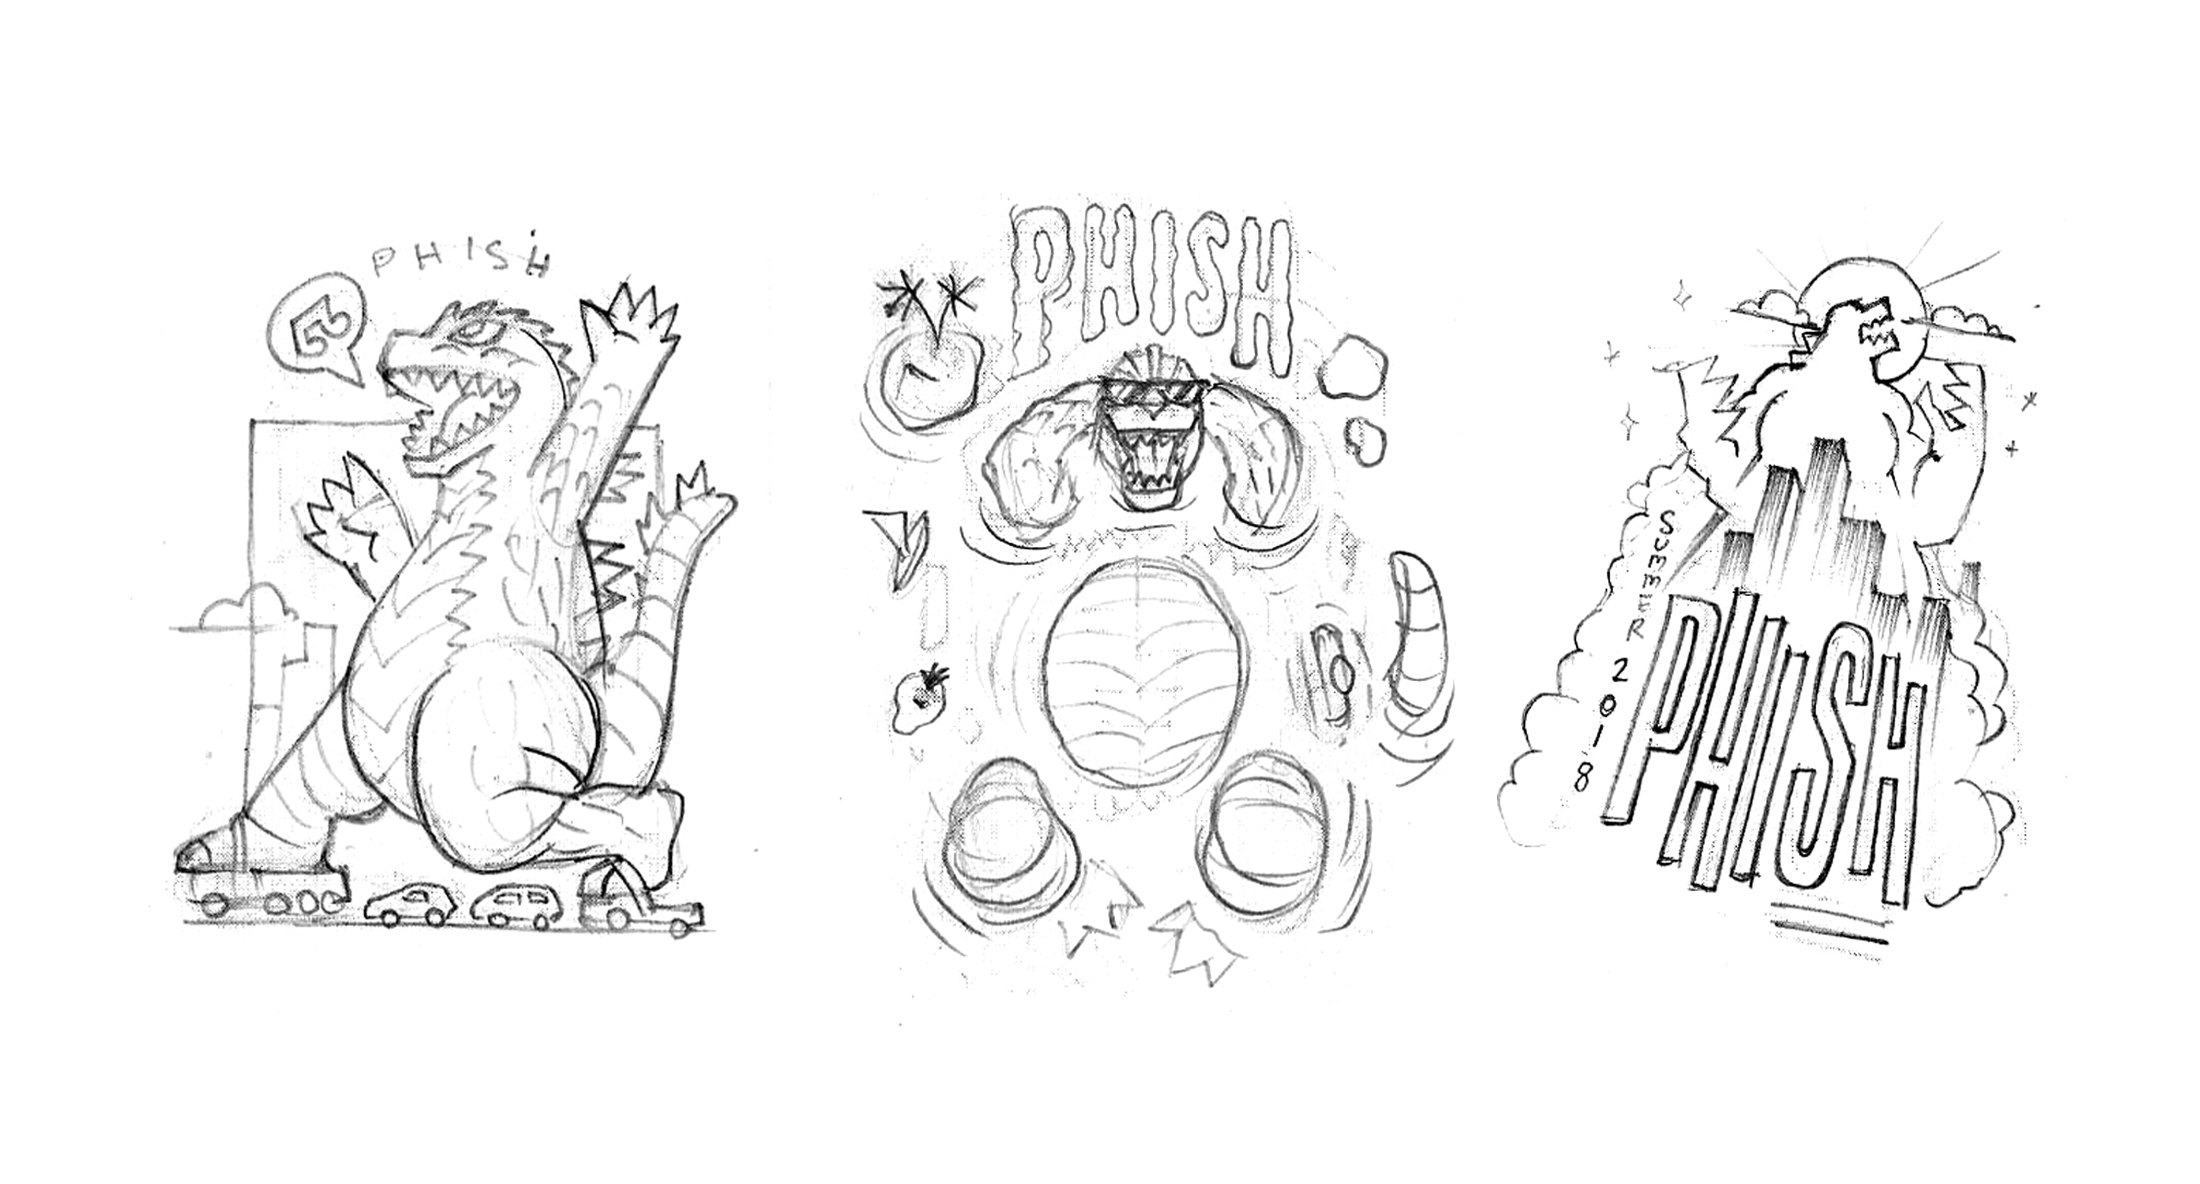 Phish_Godzilla_sketches02.jpg